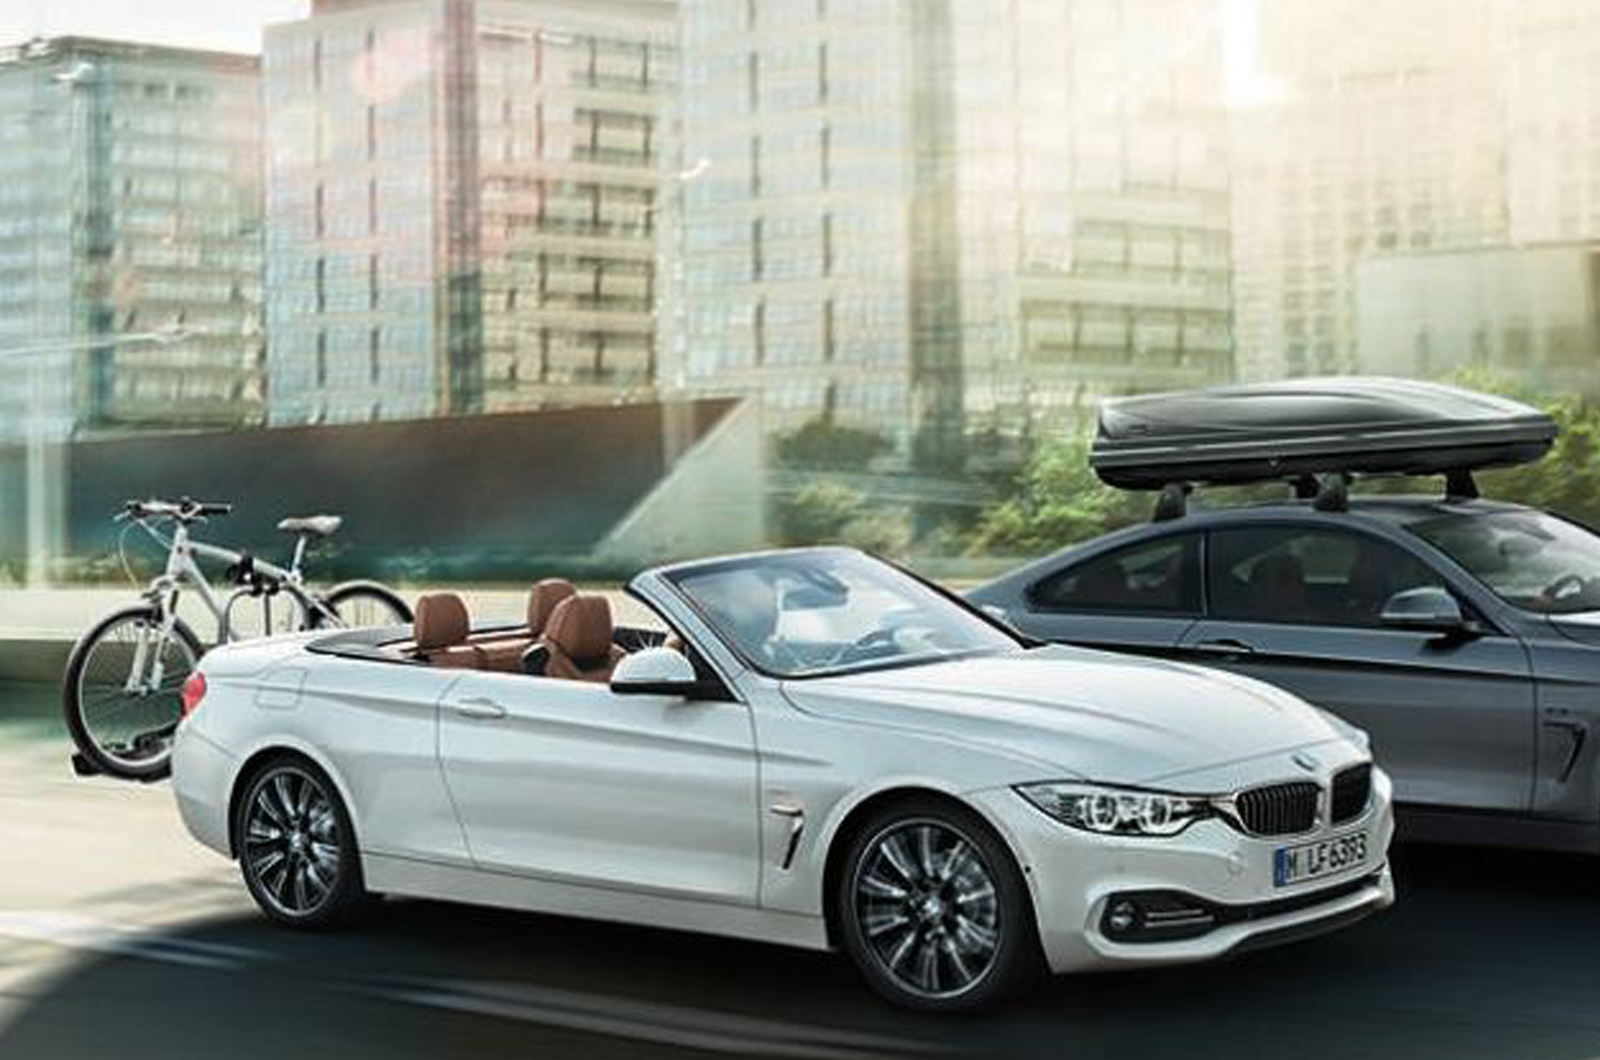 Awd Sports Cars >> BMW 4-Series Convertible Leaked Pictures: xDrive AWD Now ...